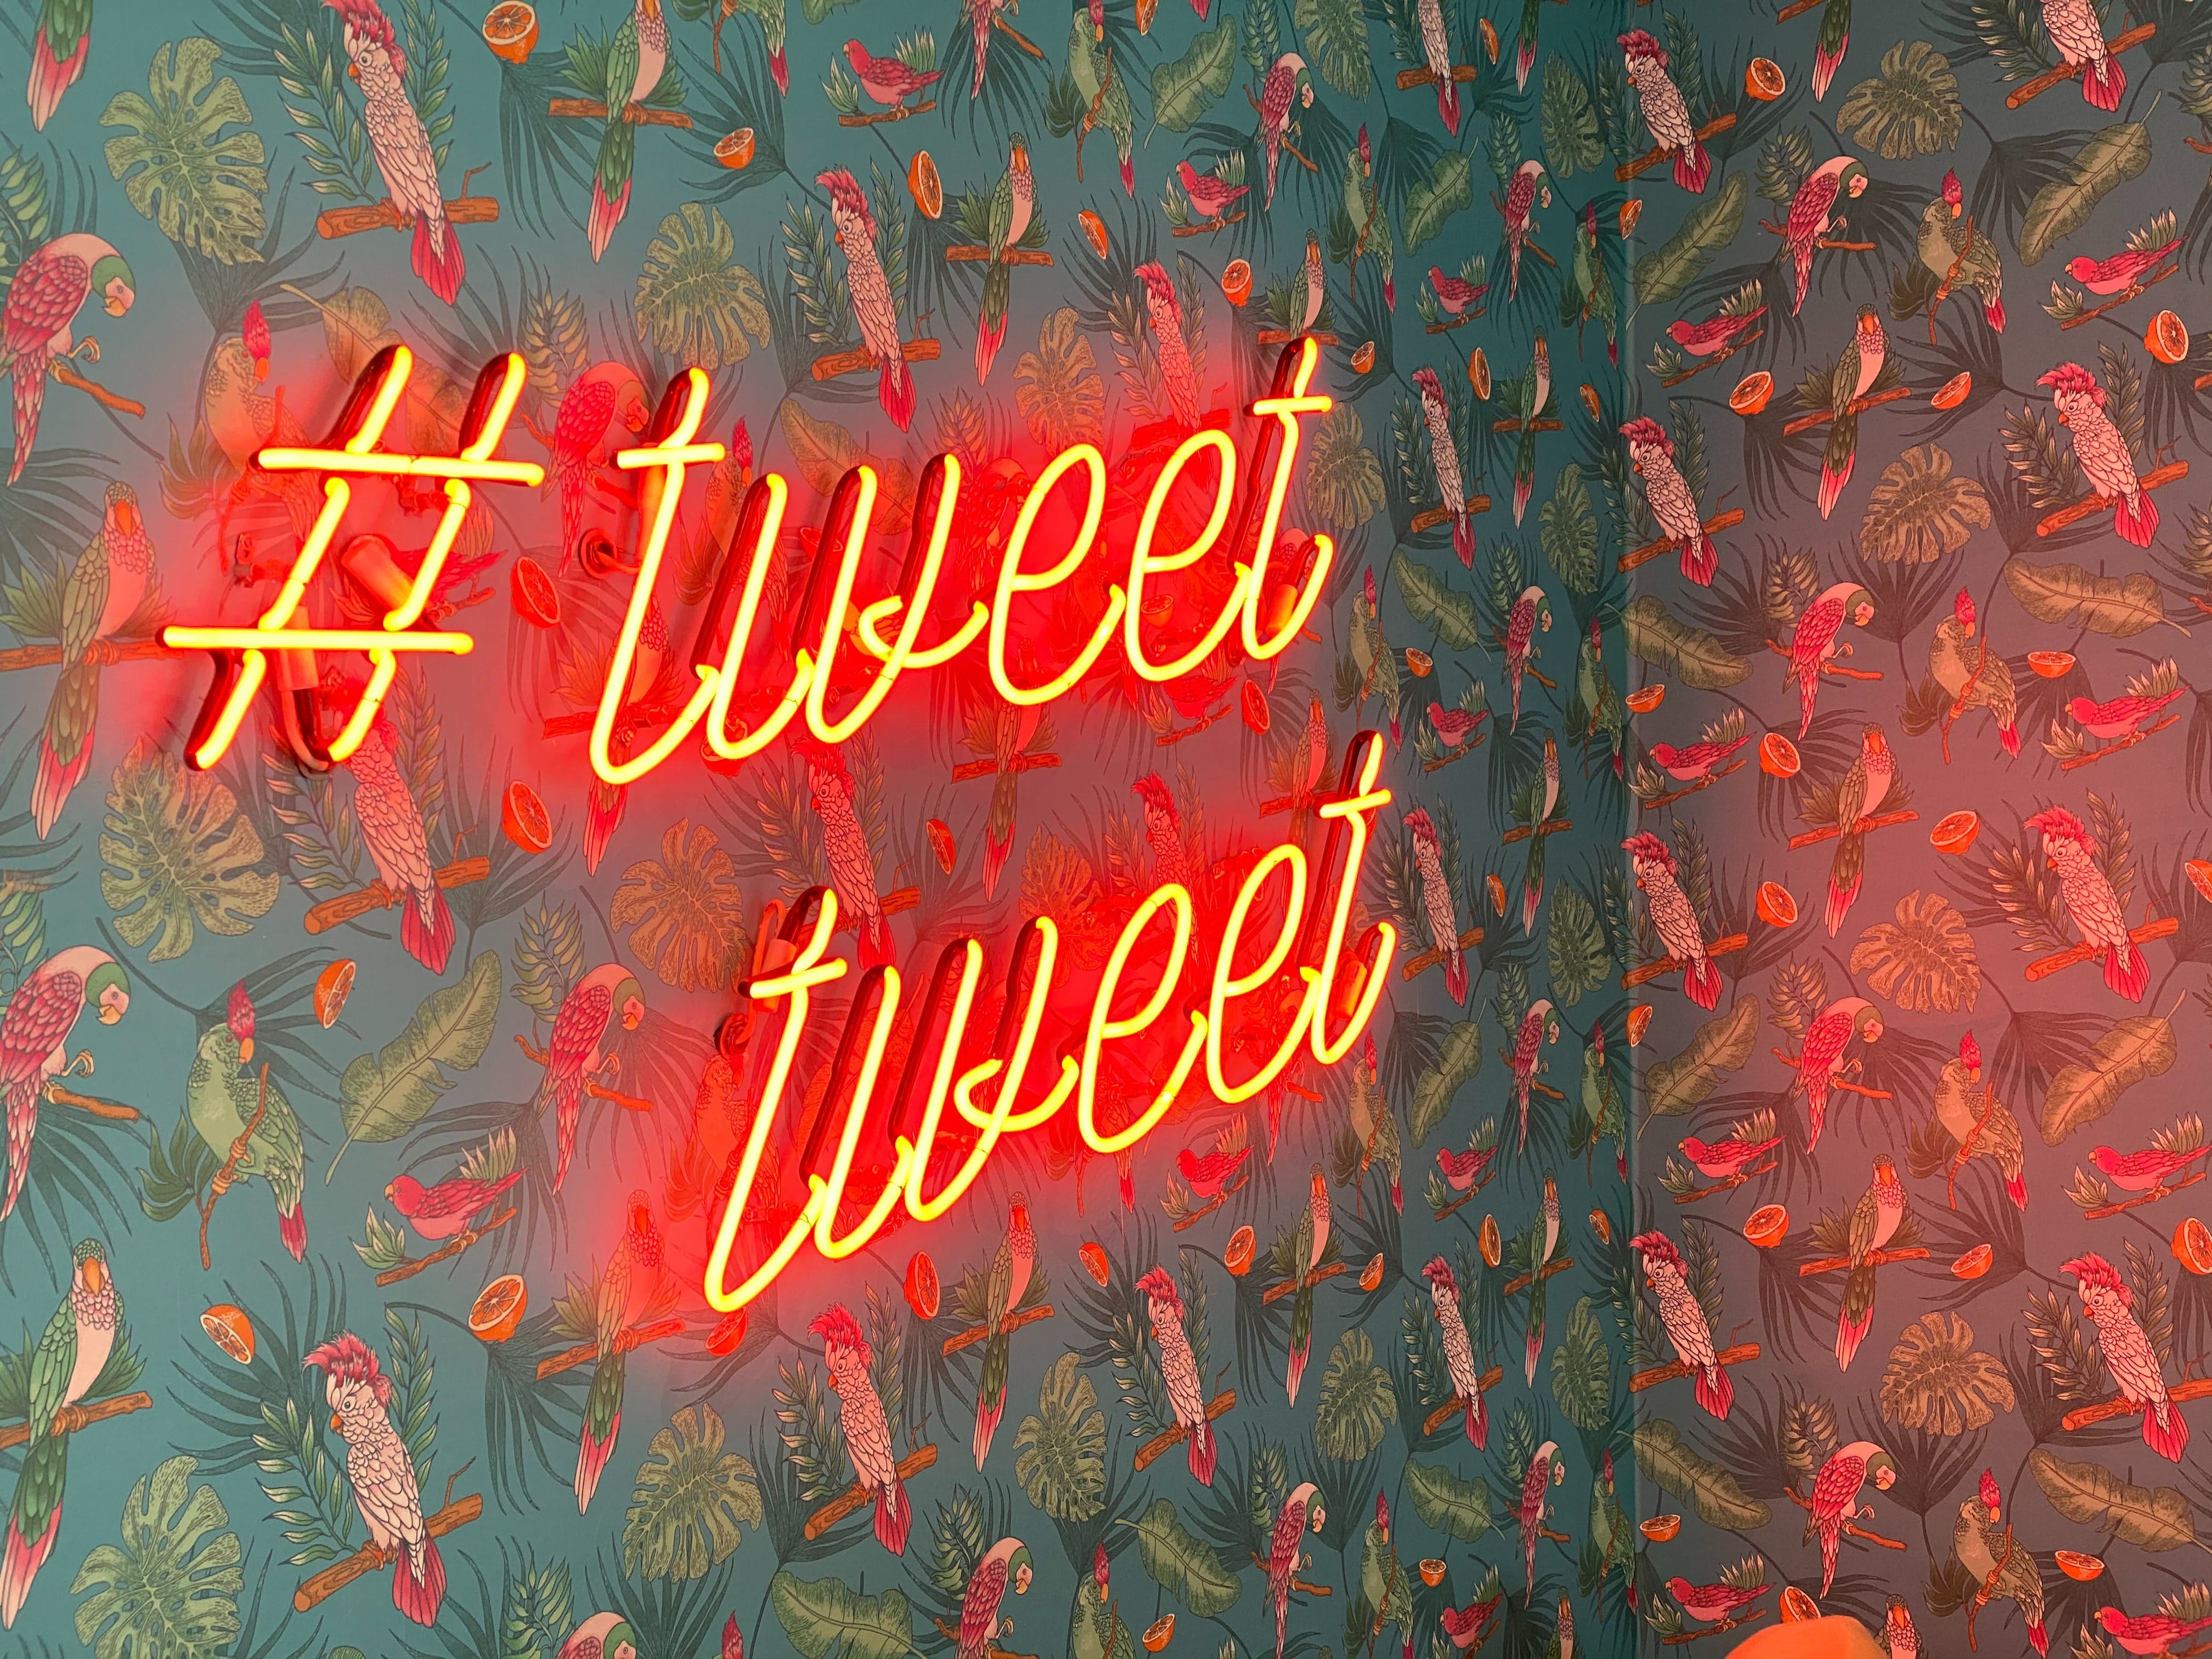 Neon sign with hashtag and two words saying Tweet